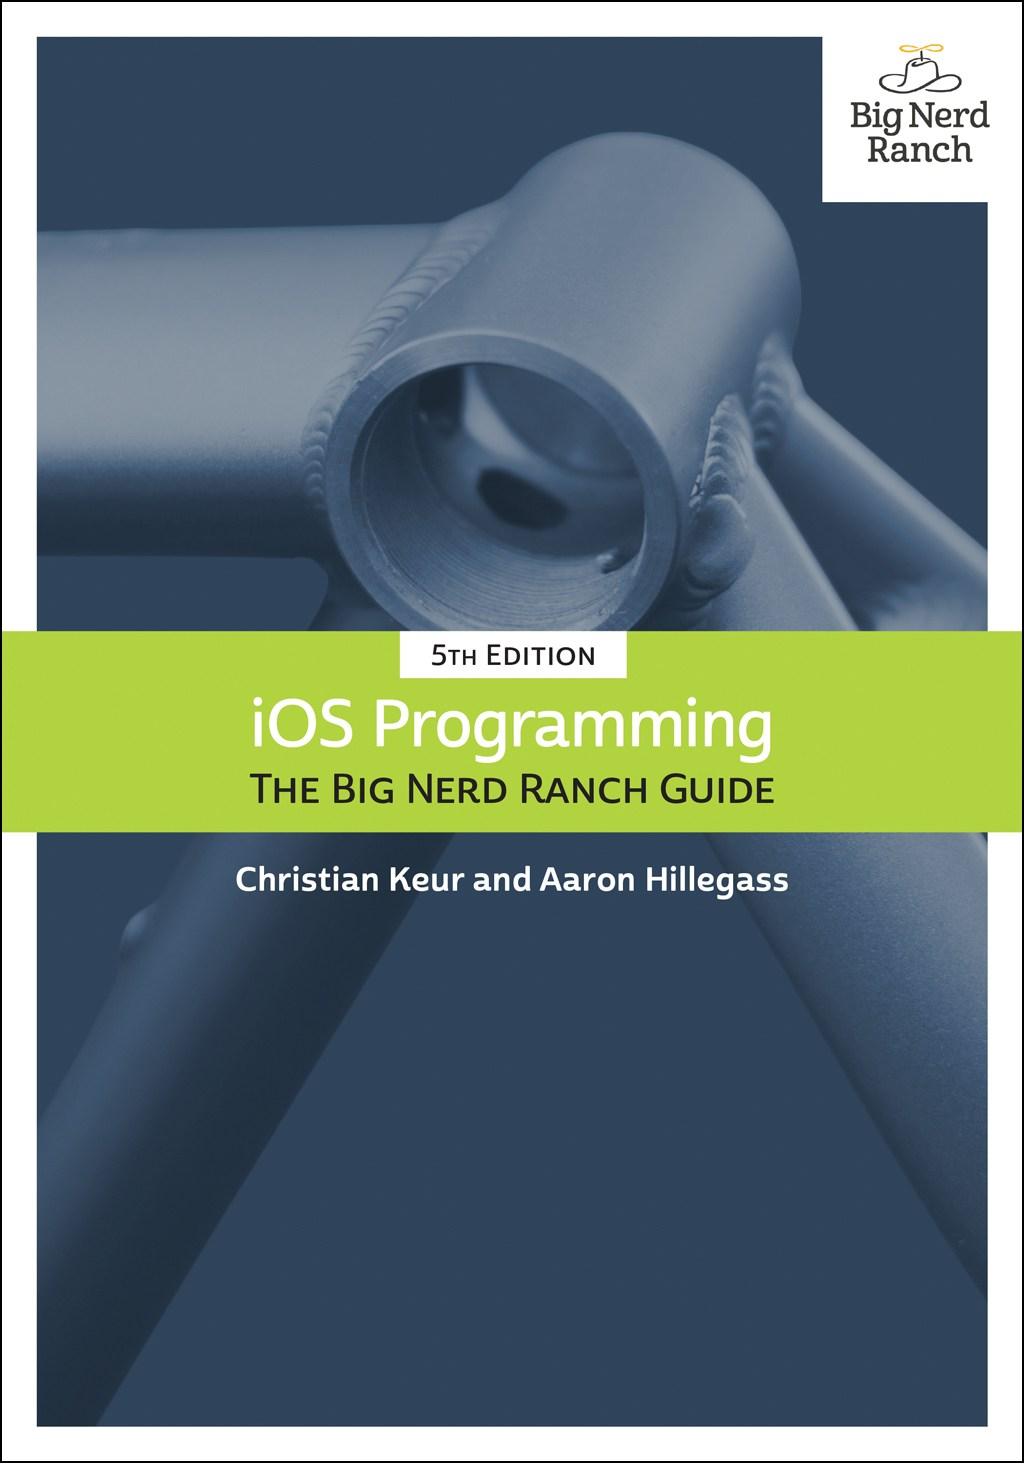 iOS Programming: The Big Nerd Ranch Guide, 5th Edition